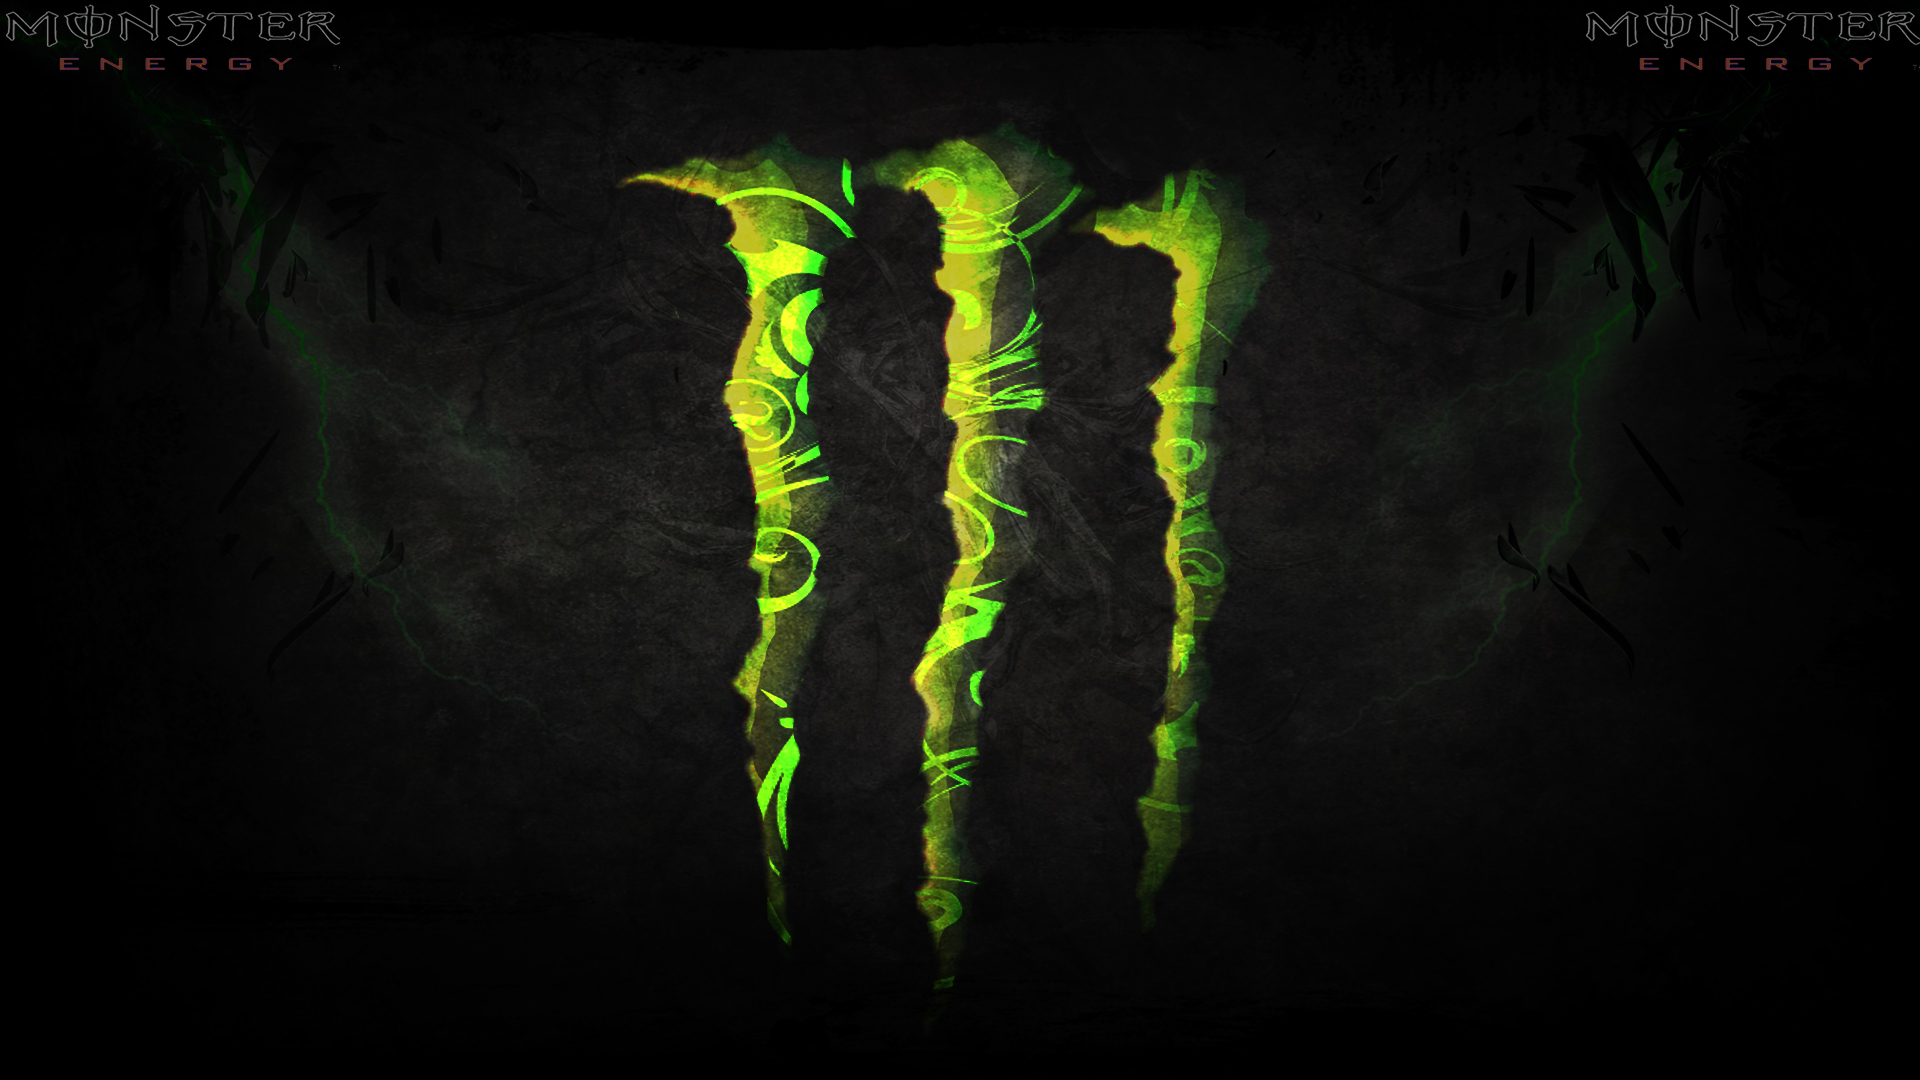 Motocross wallpaper free hd wallpapers page 0 wallpaperlepi - Monster Energy Free Hd Wallpapers Page 0 Wallpaperlepi